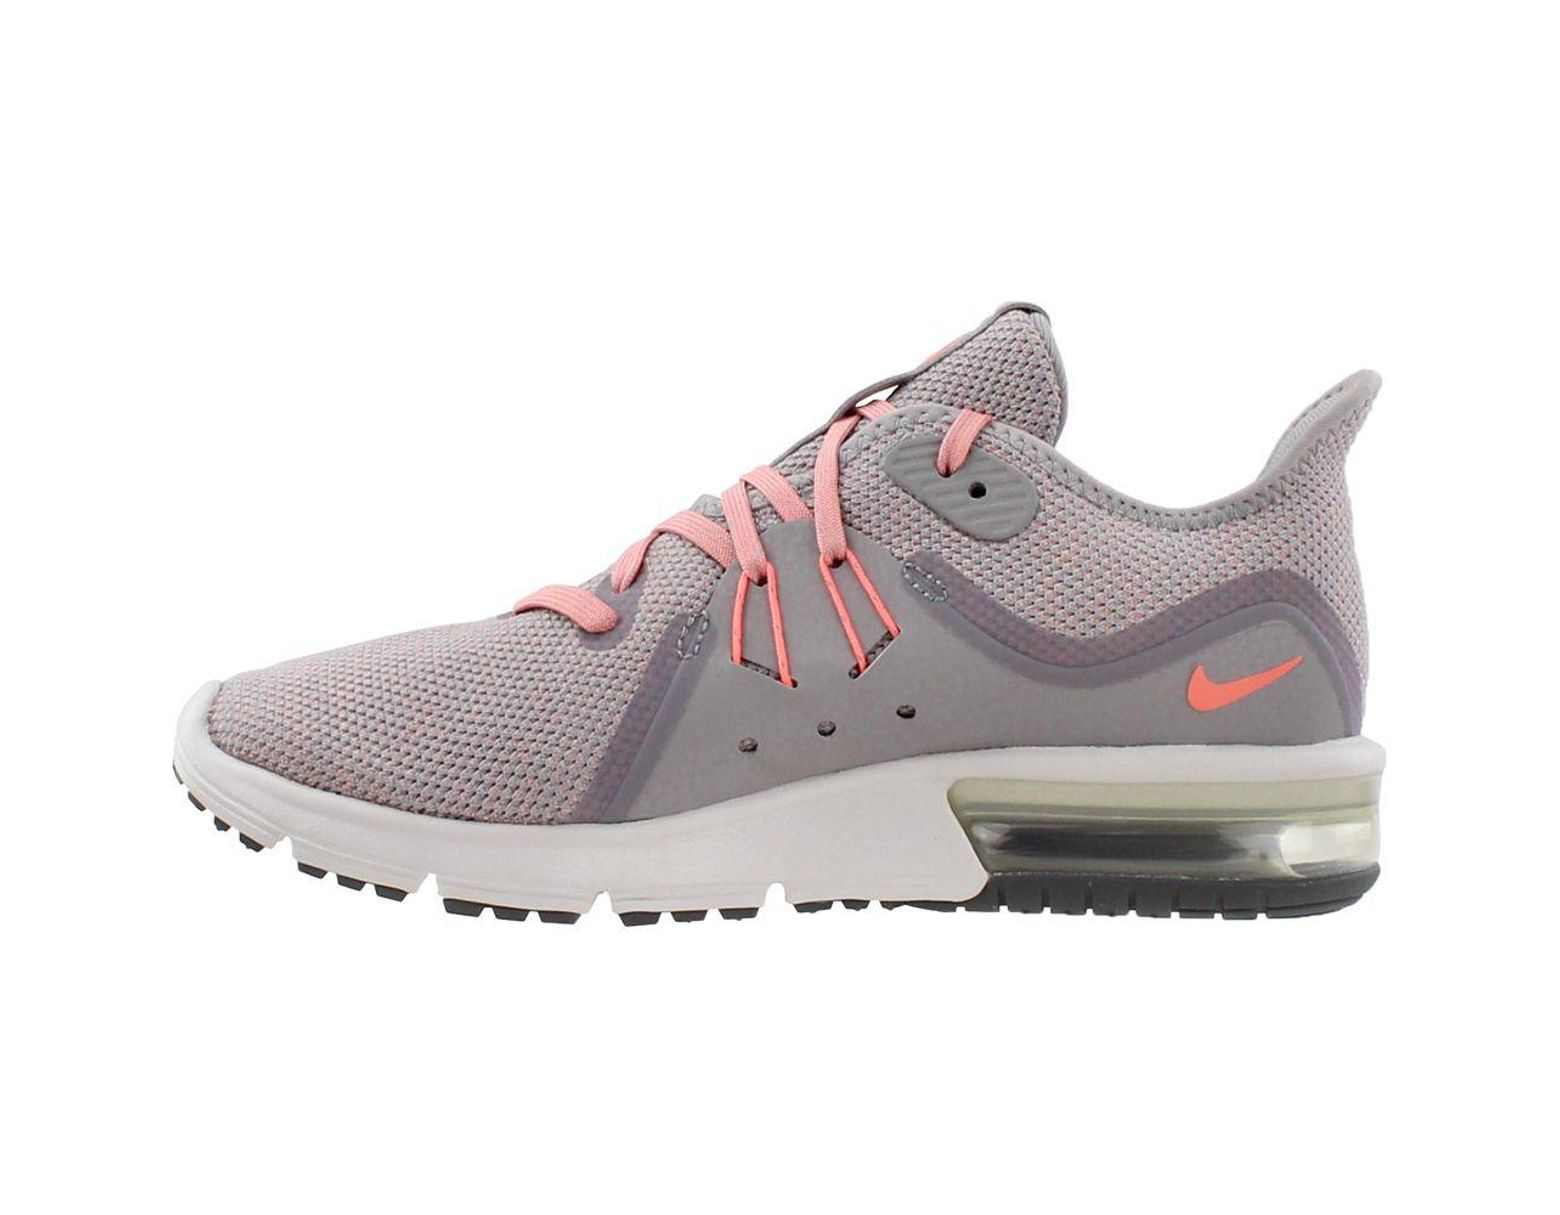 Nike Nike Air Max Sequent 3 (Light CreamCrimson TintWhiteString) Women's Shoes from Zappos | Shop